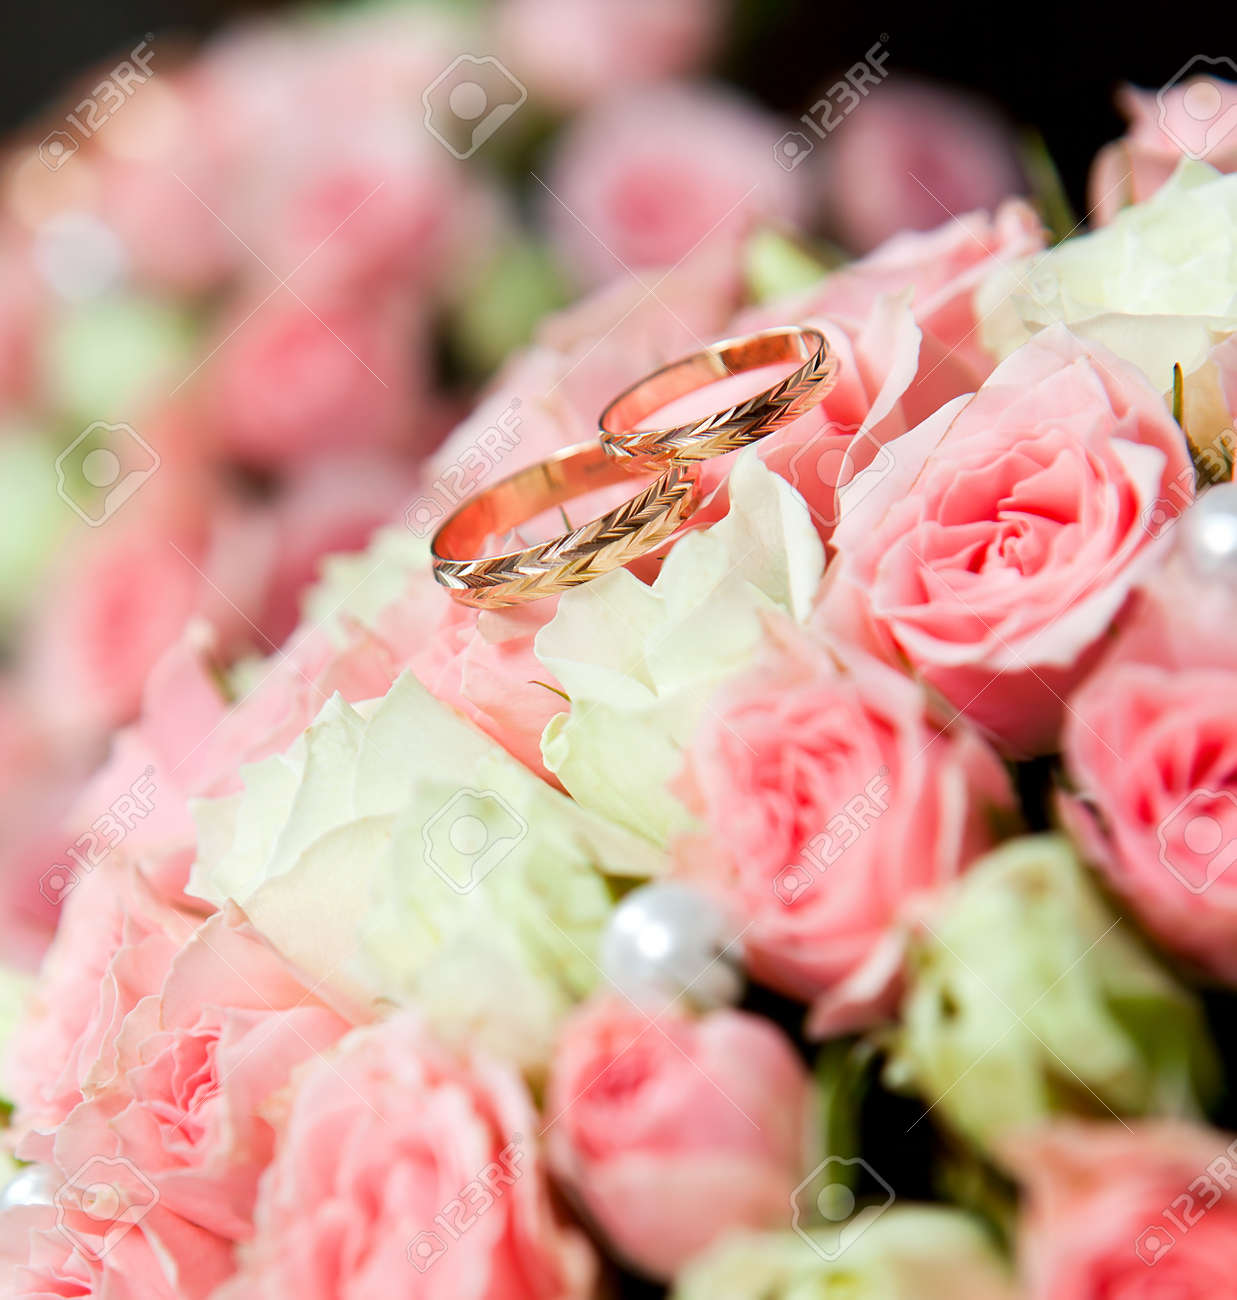 Gold wedding rings of the groom and the bride on a bunch of flowers. Stock Photo - 13905597